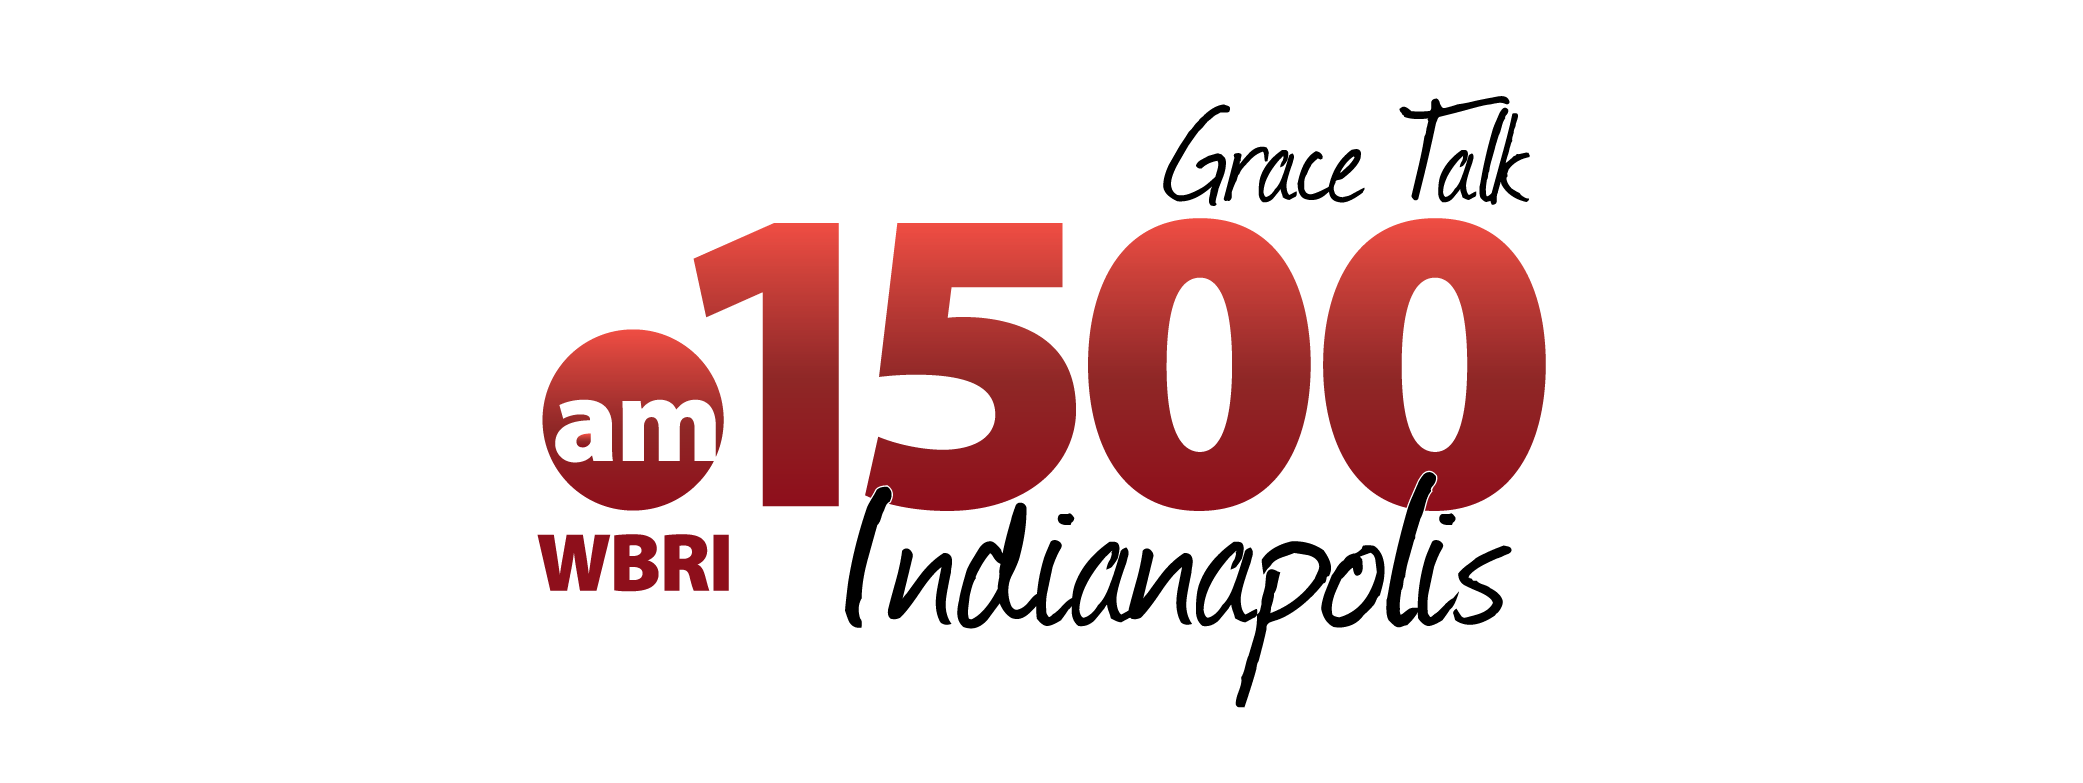 Record Top Rated Radio Shows And Stations In Indianapolis With DARfm